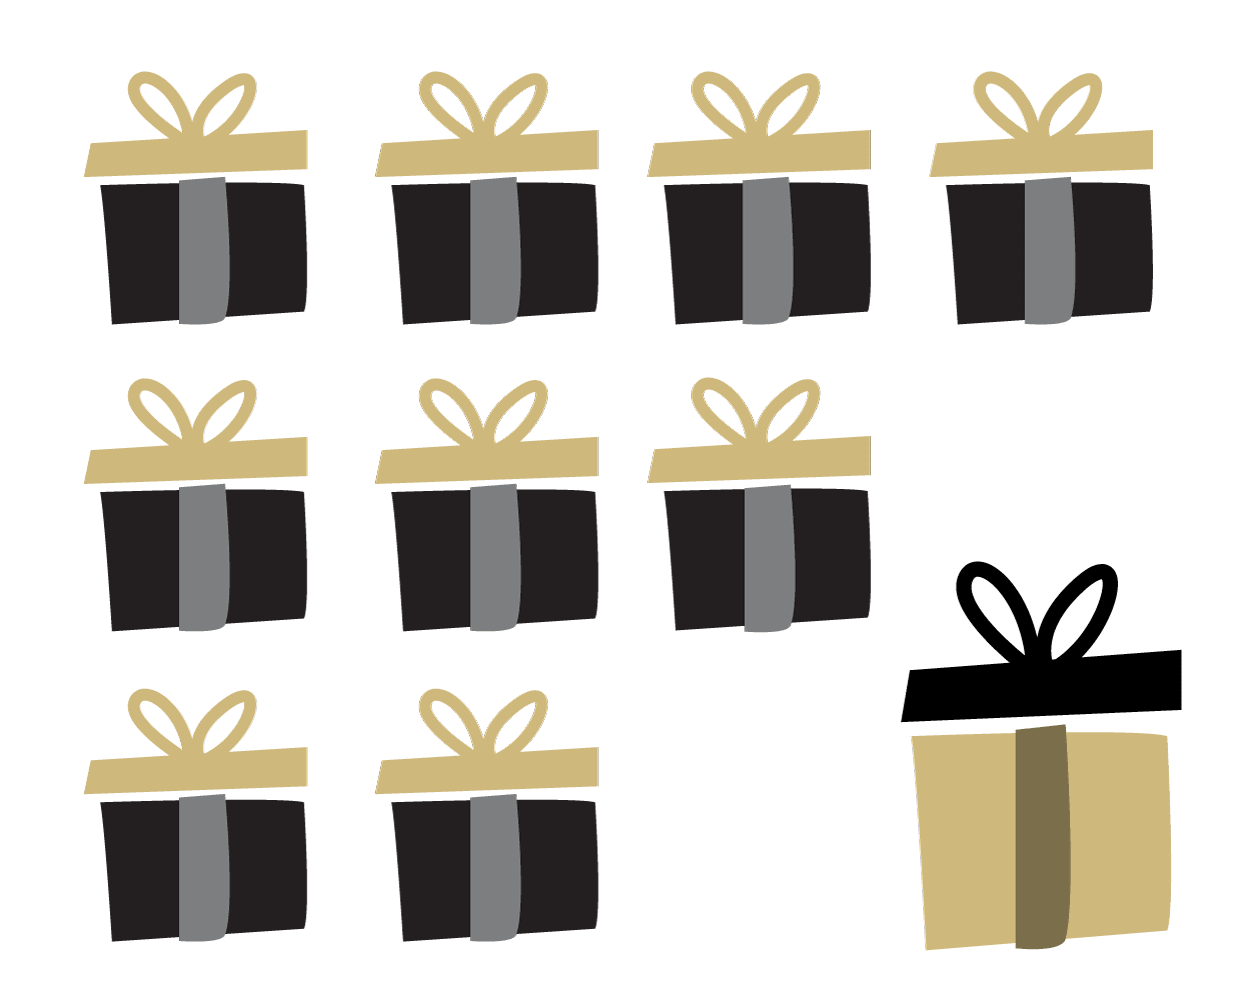 Financials chart graphic - showing 9 out of 10 present boxes small, 1 large box